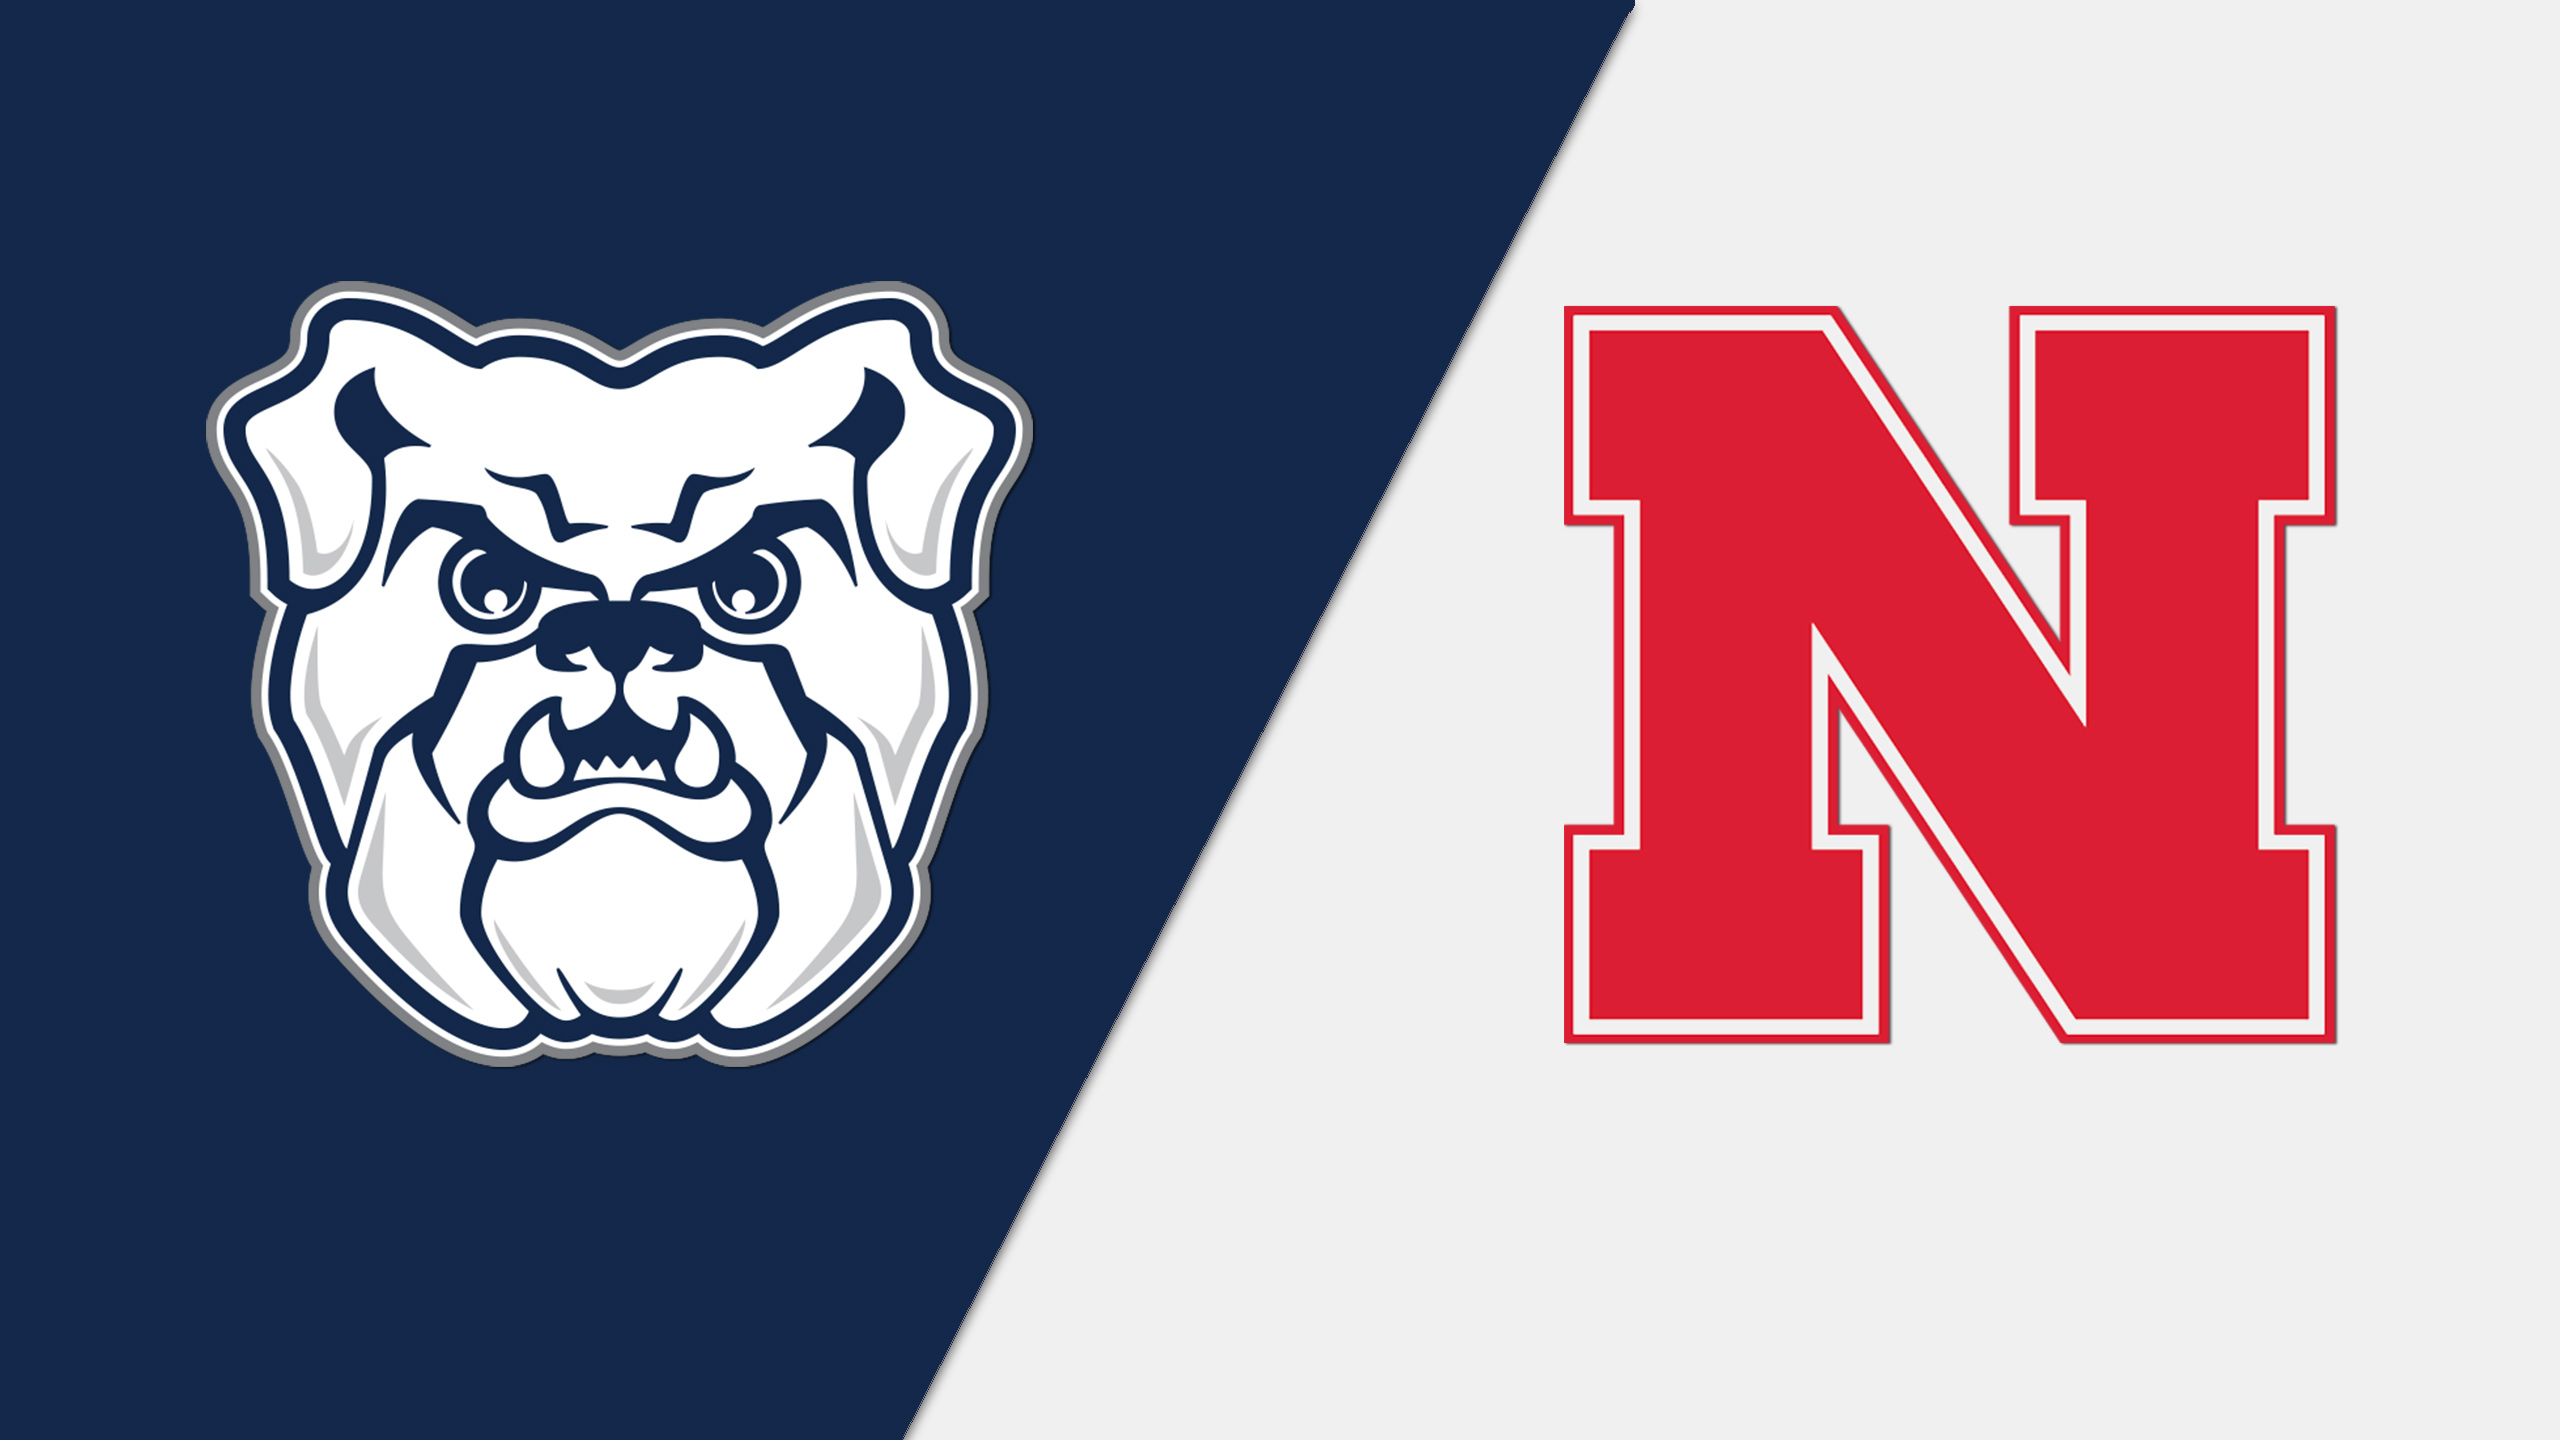 #5 Butler vs. #4 Nebraska (First Round) (re-air)